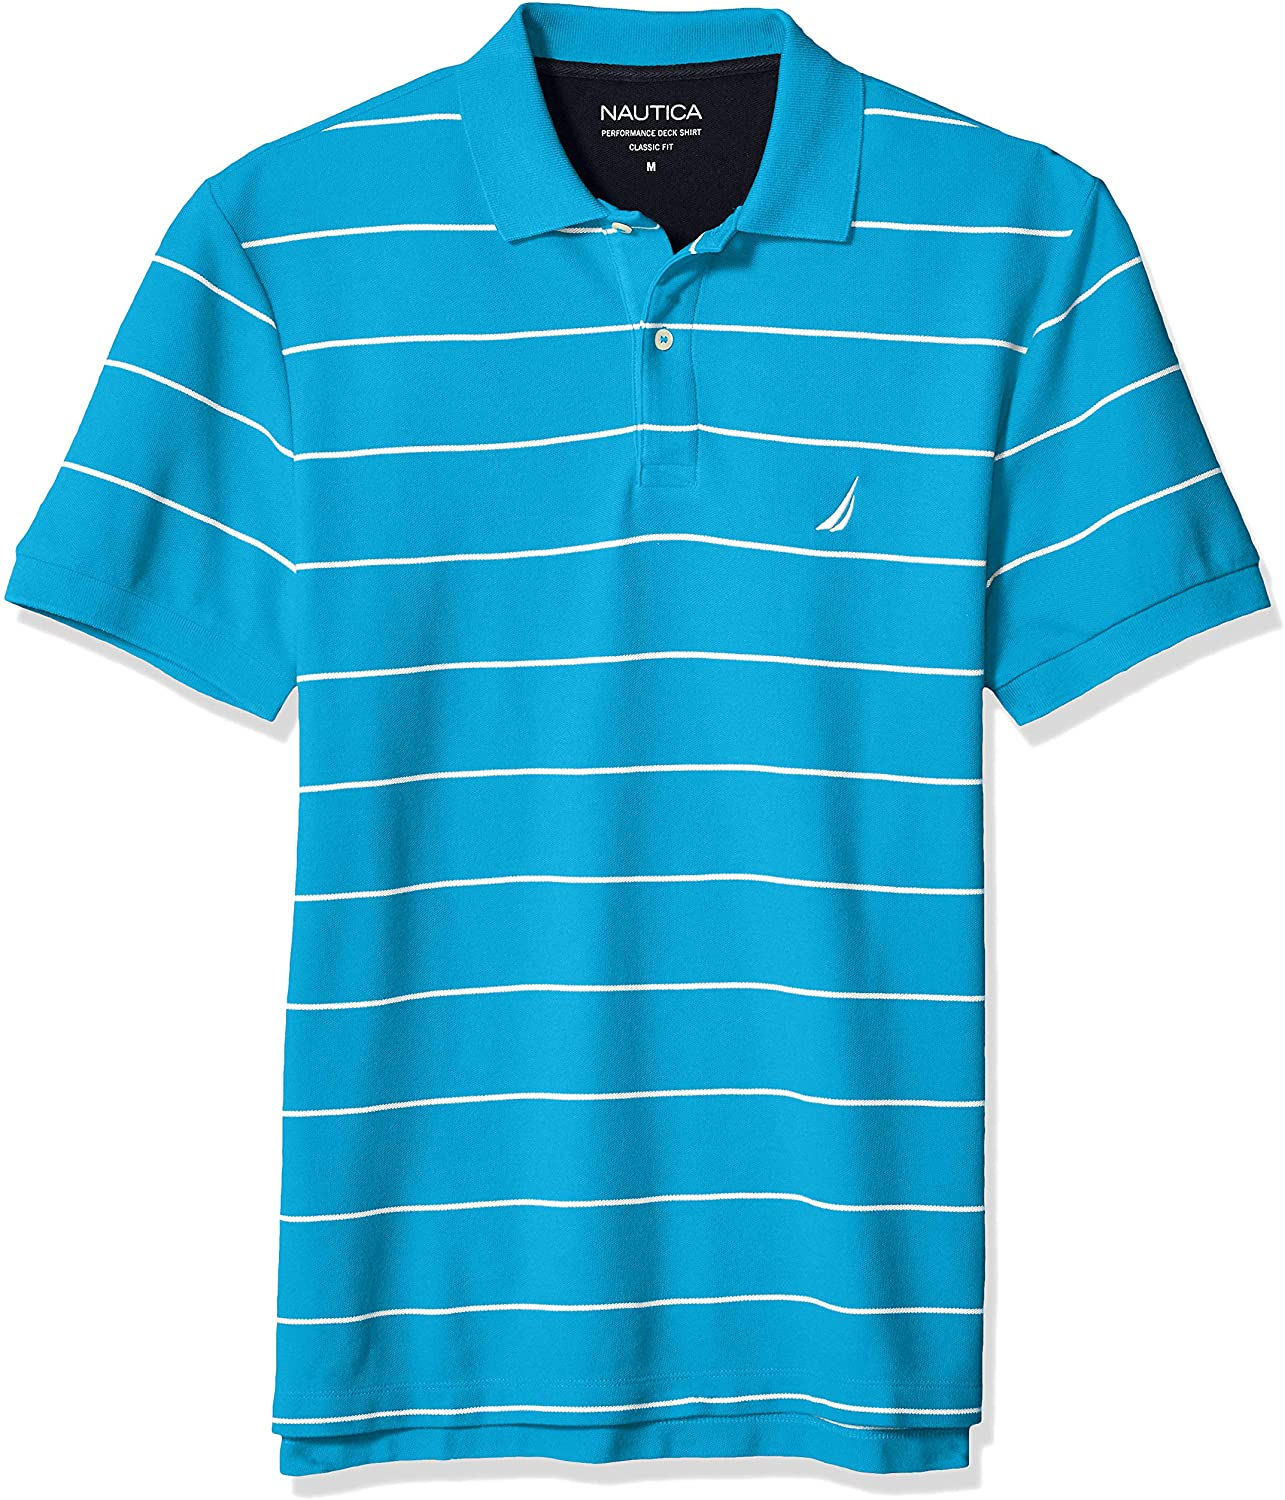 Nautica Mens Stripe Deck Anchor Polo